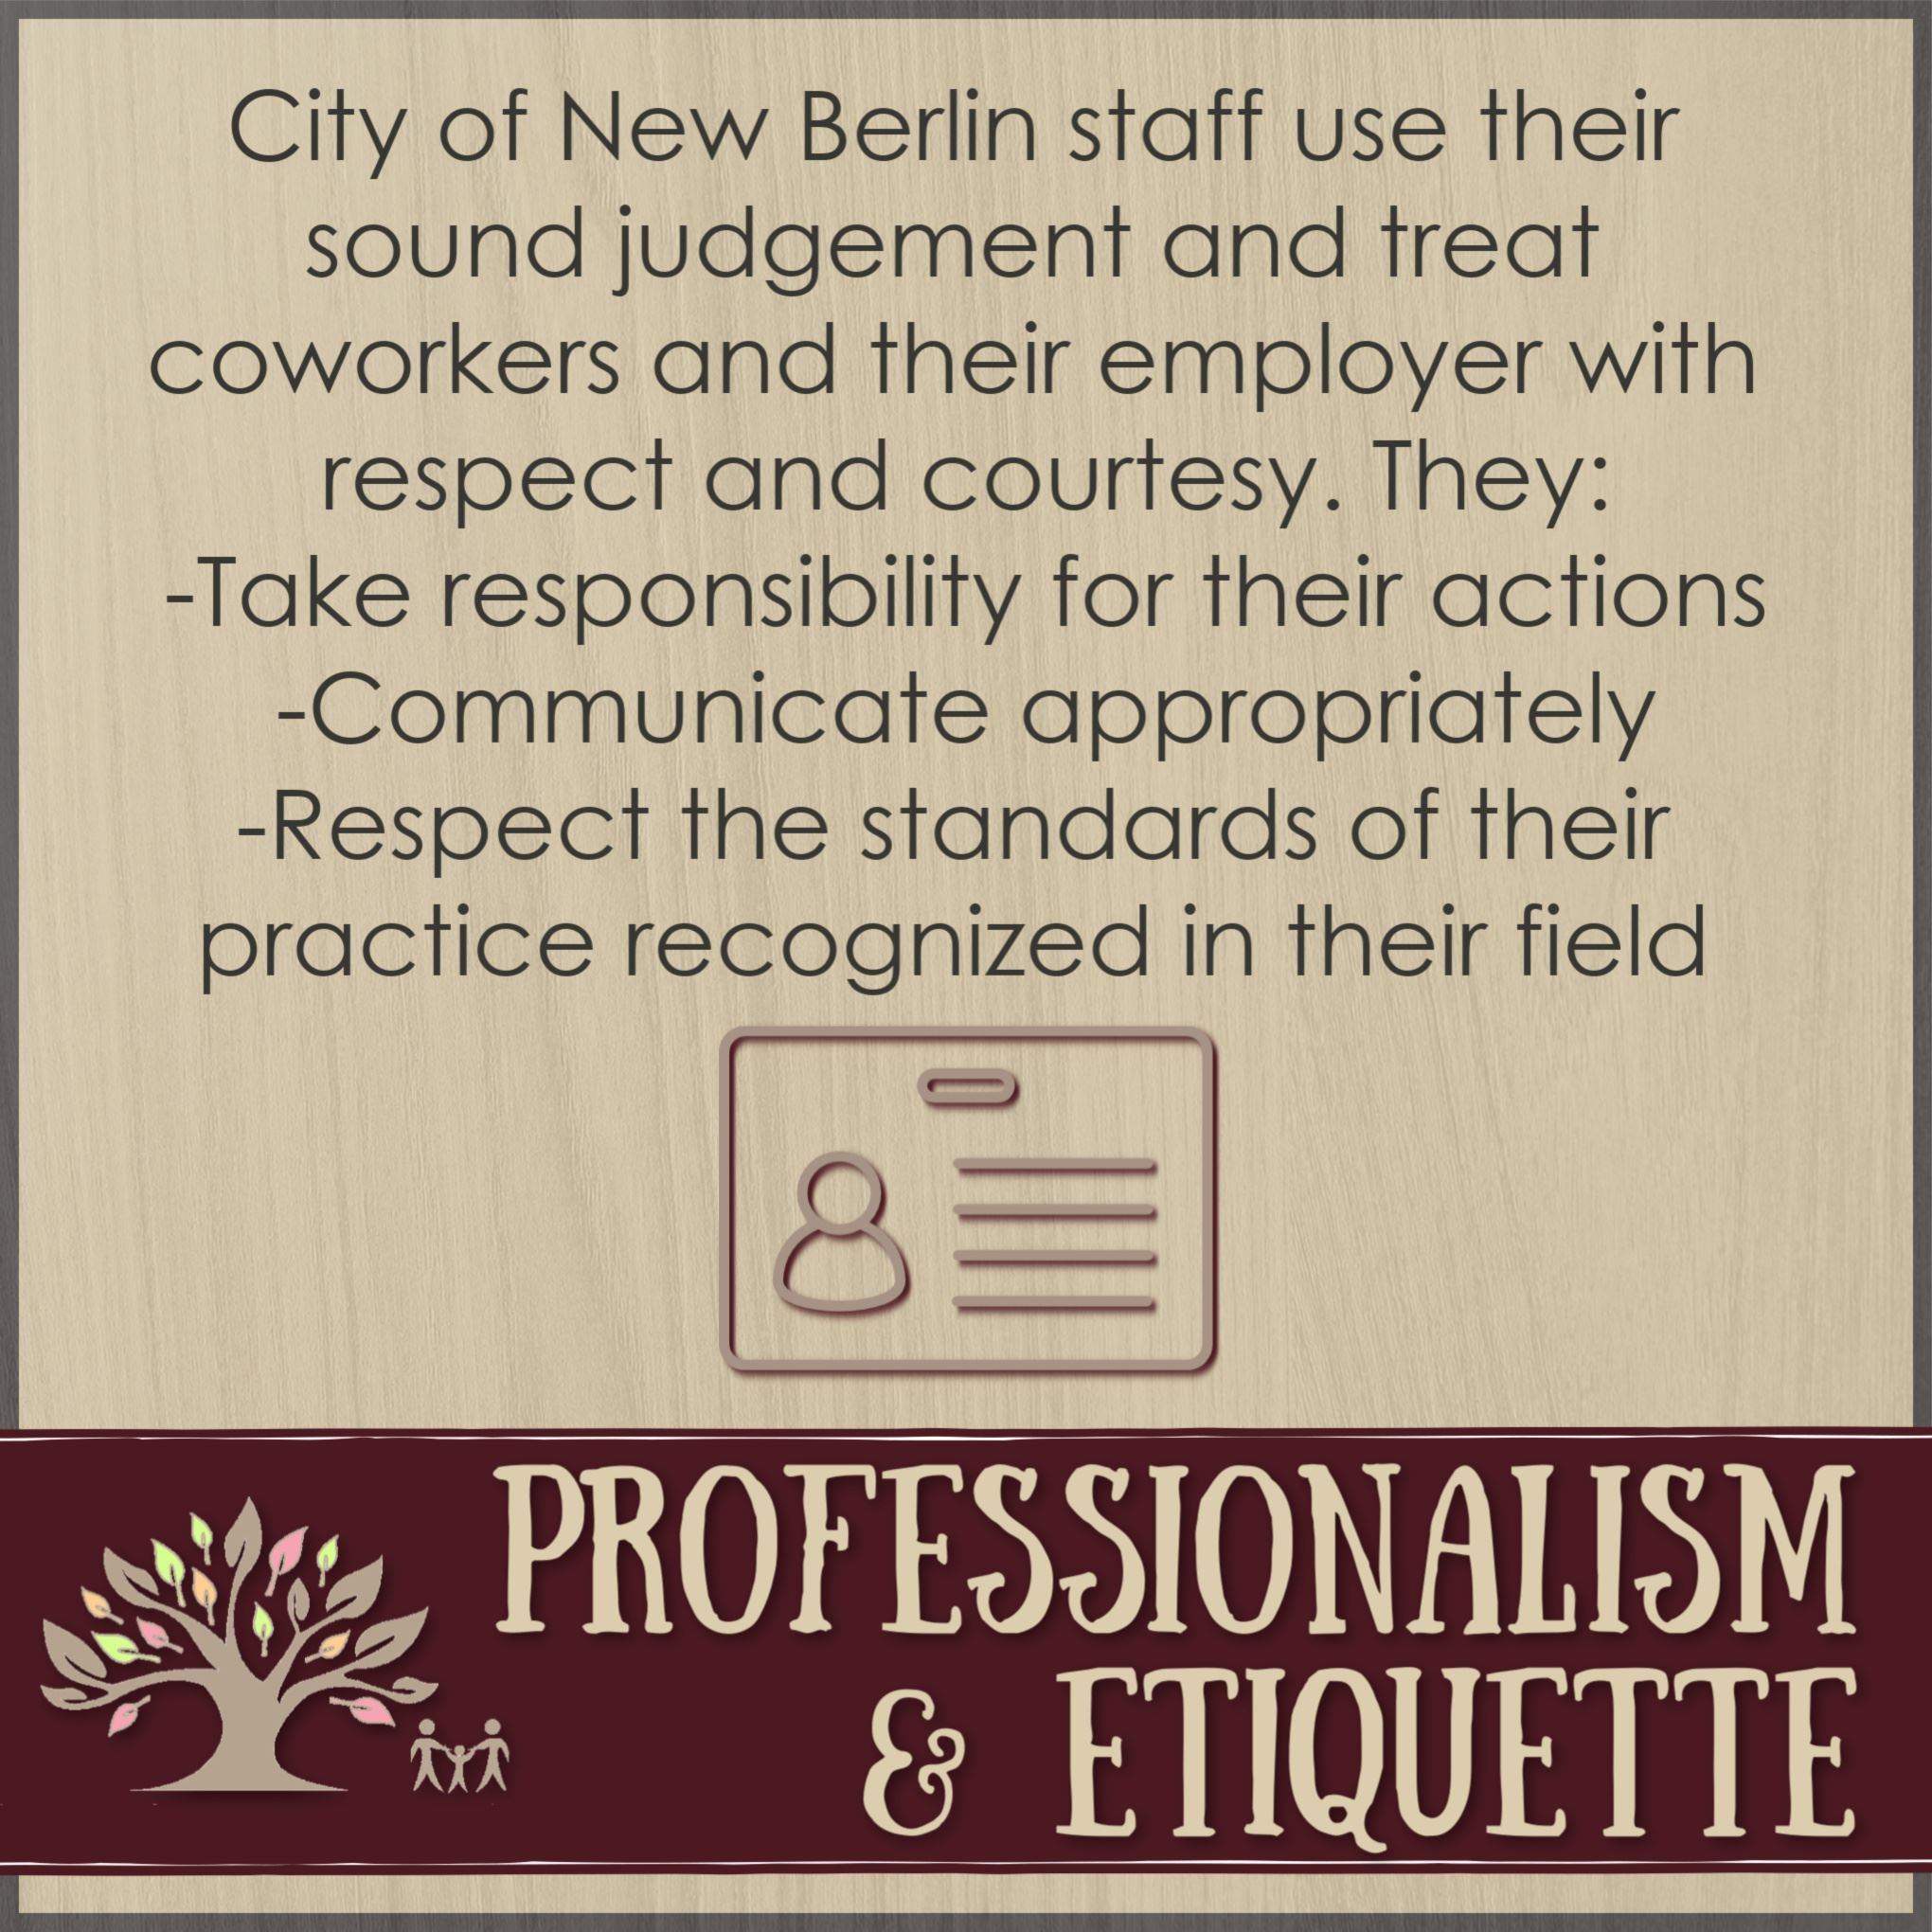 Core Competencies - Professionalism and Etiquette